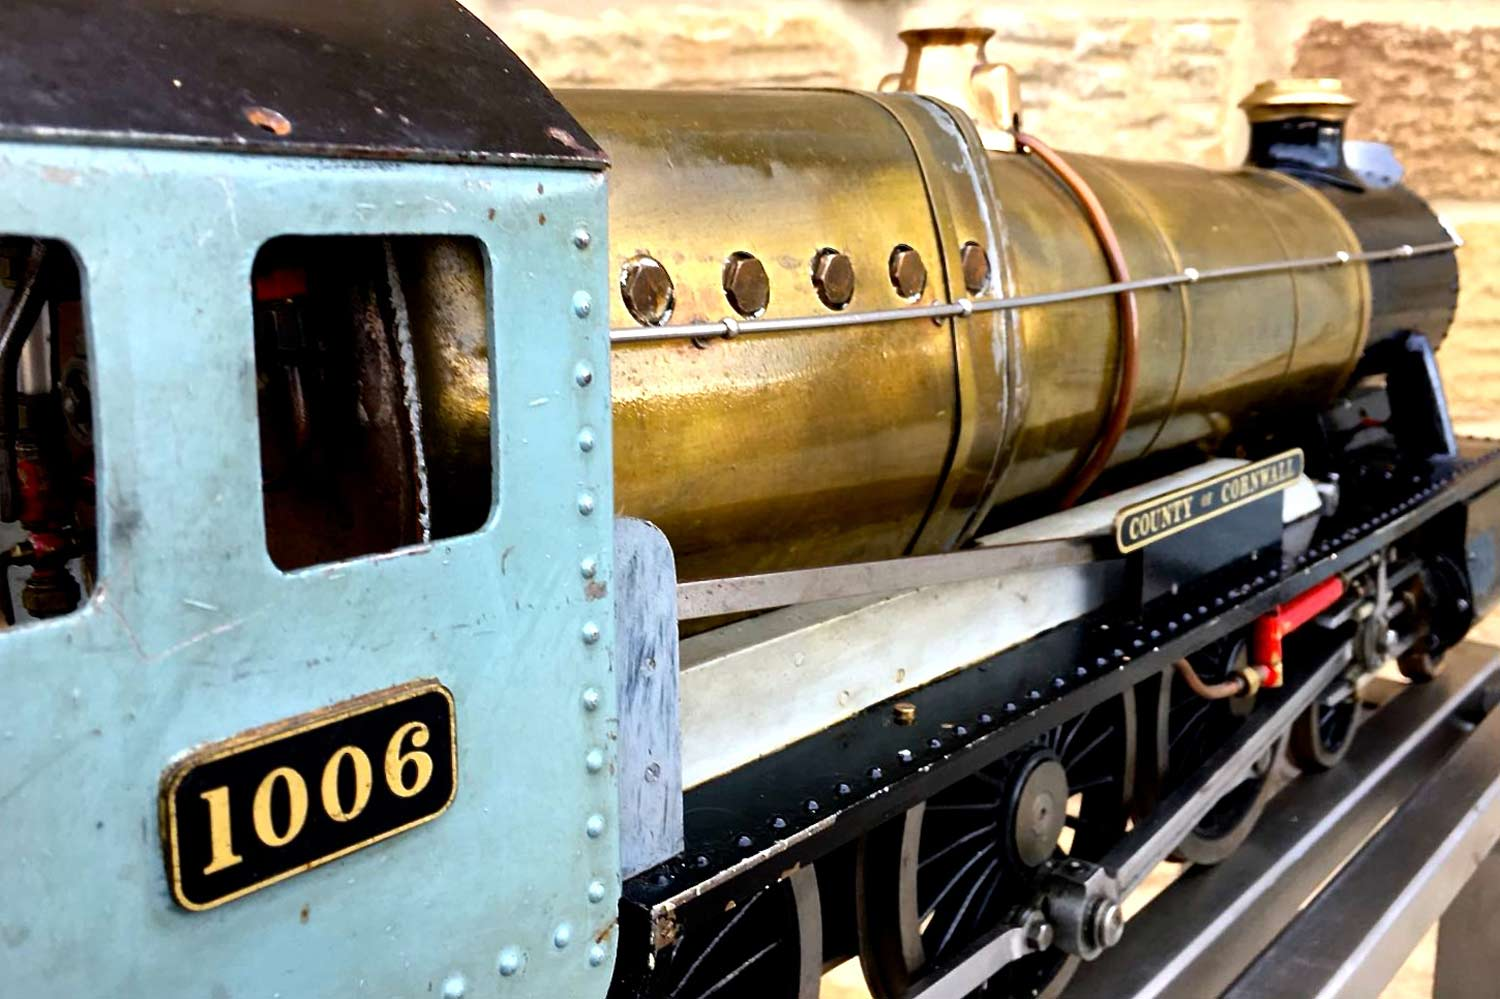 test 3-and-a-half-inch-gauge-GWR-County-Hawksworth-live-steam-locomotive-for-sale-4